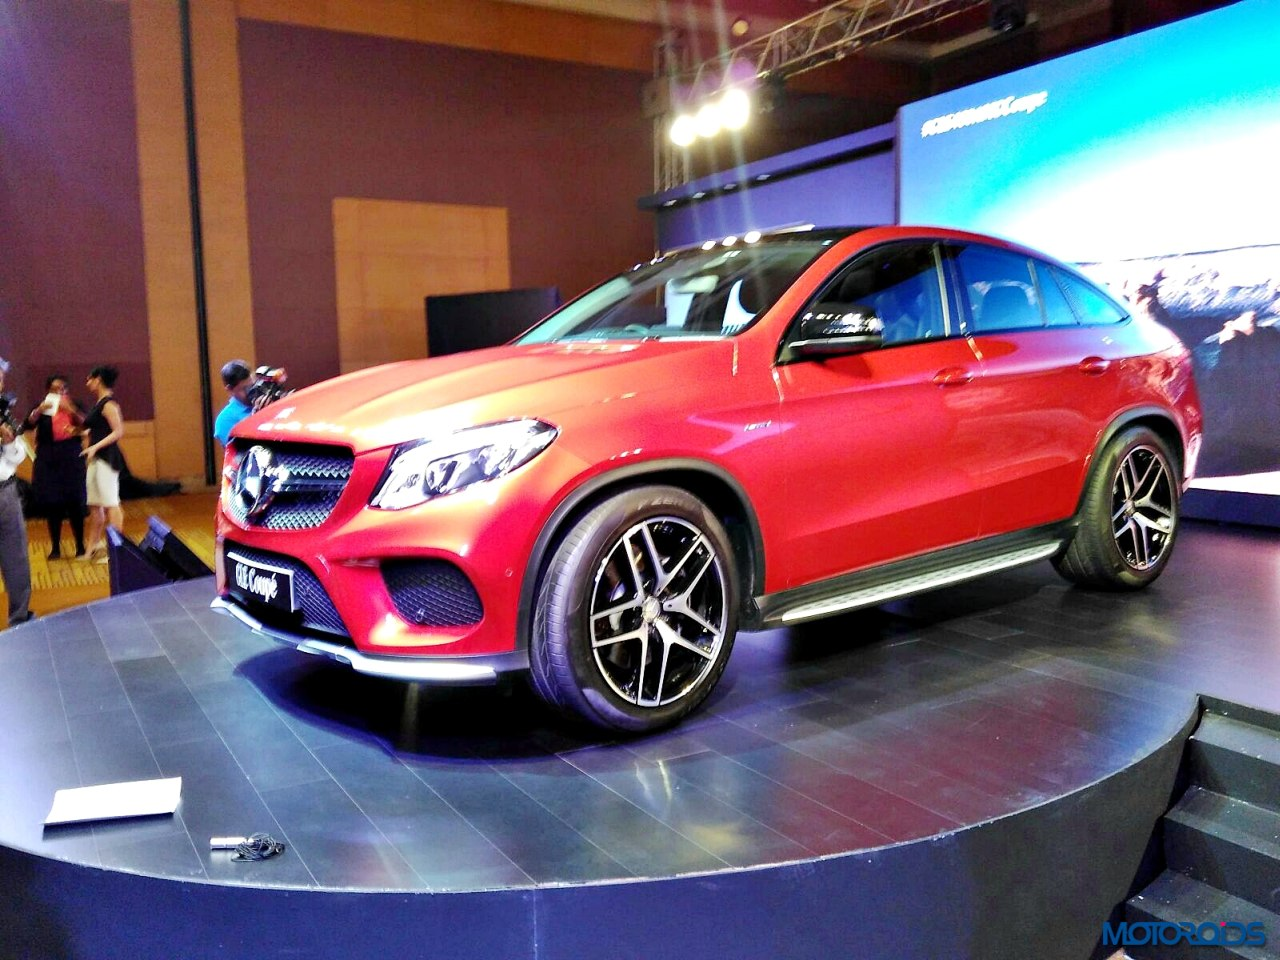 Mercedes GLE450 AMG India launch (31)